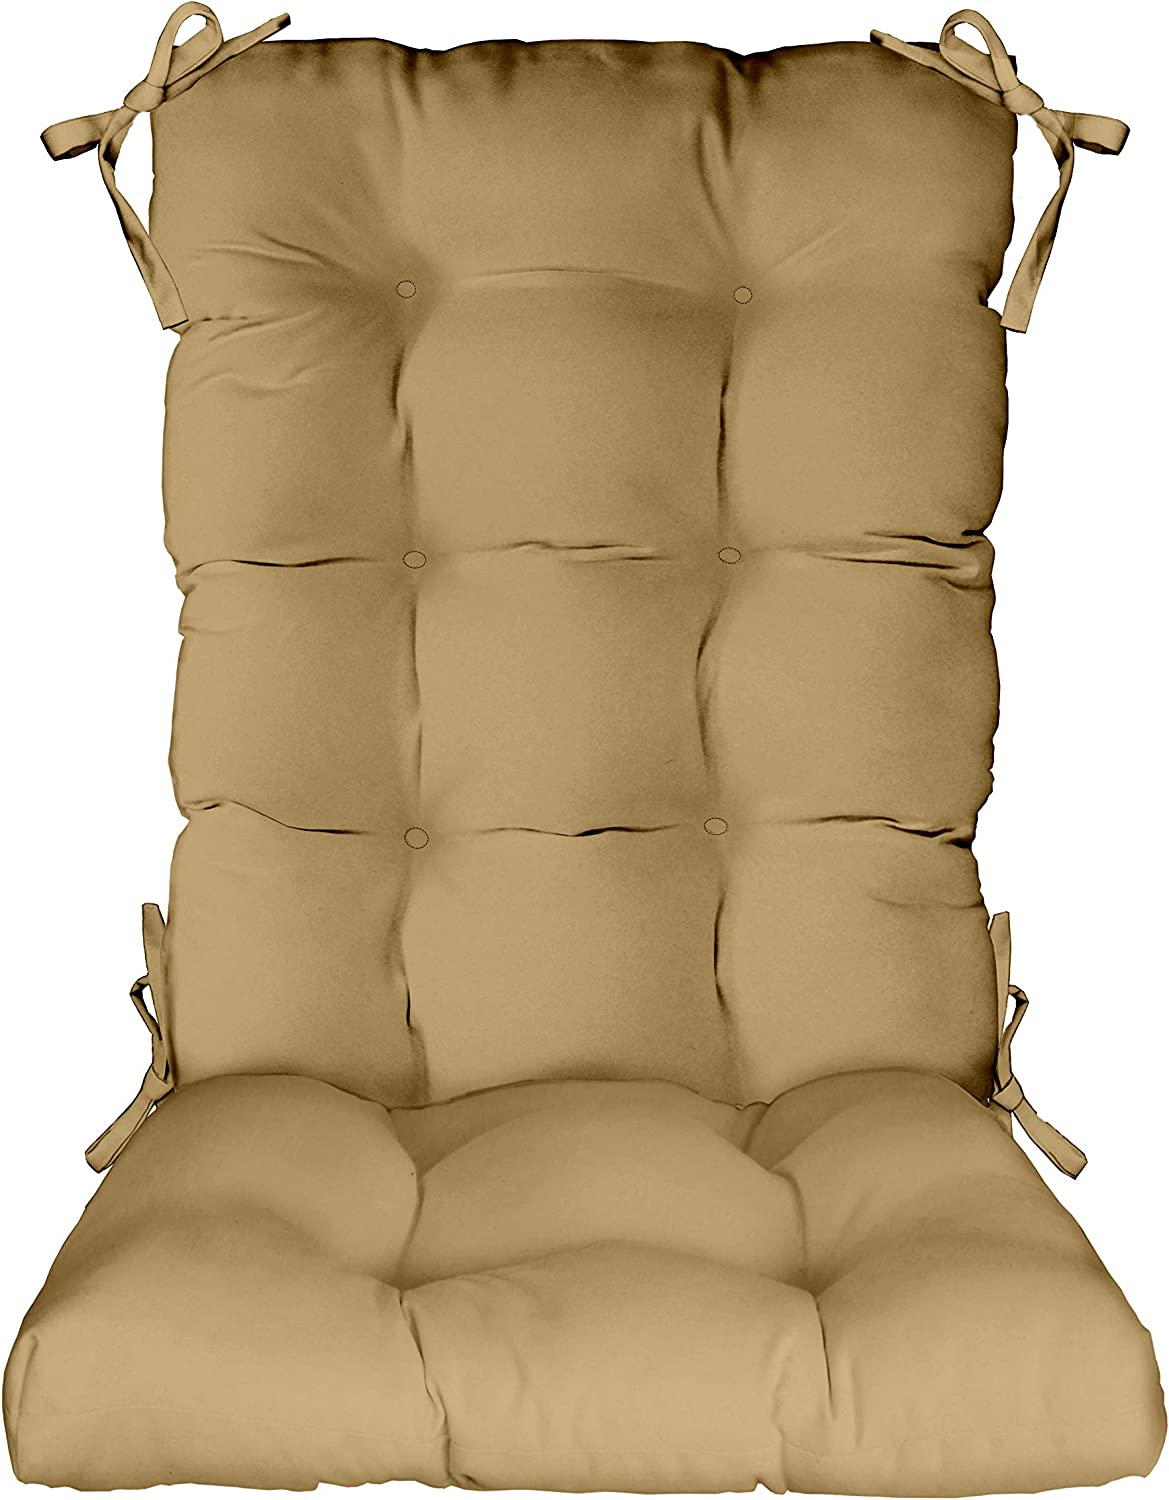 RSH Décor Super sale Indoor Outdoor Tufted Rocker Chair Max 49% OFF Pad Cush Rocking